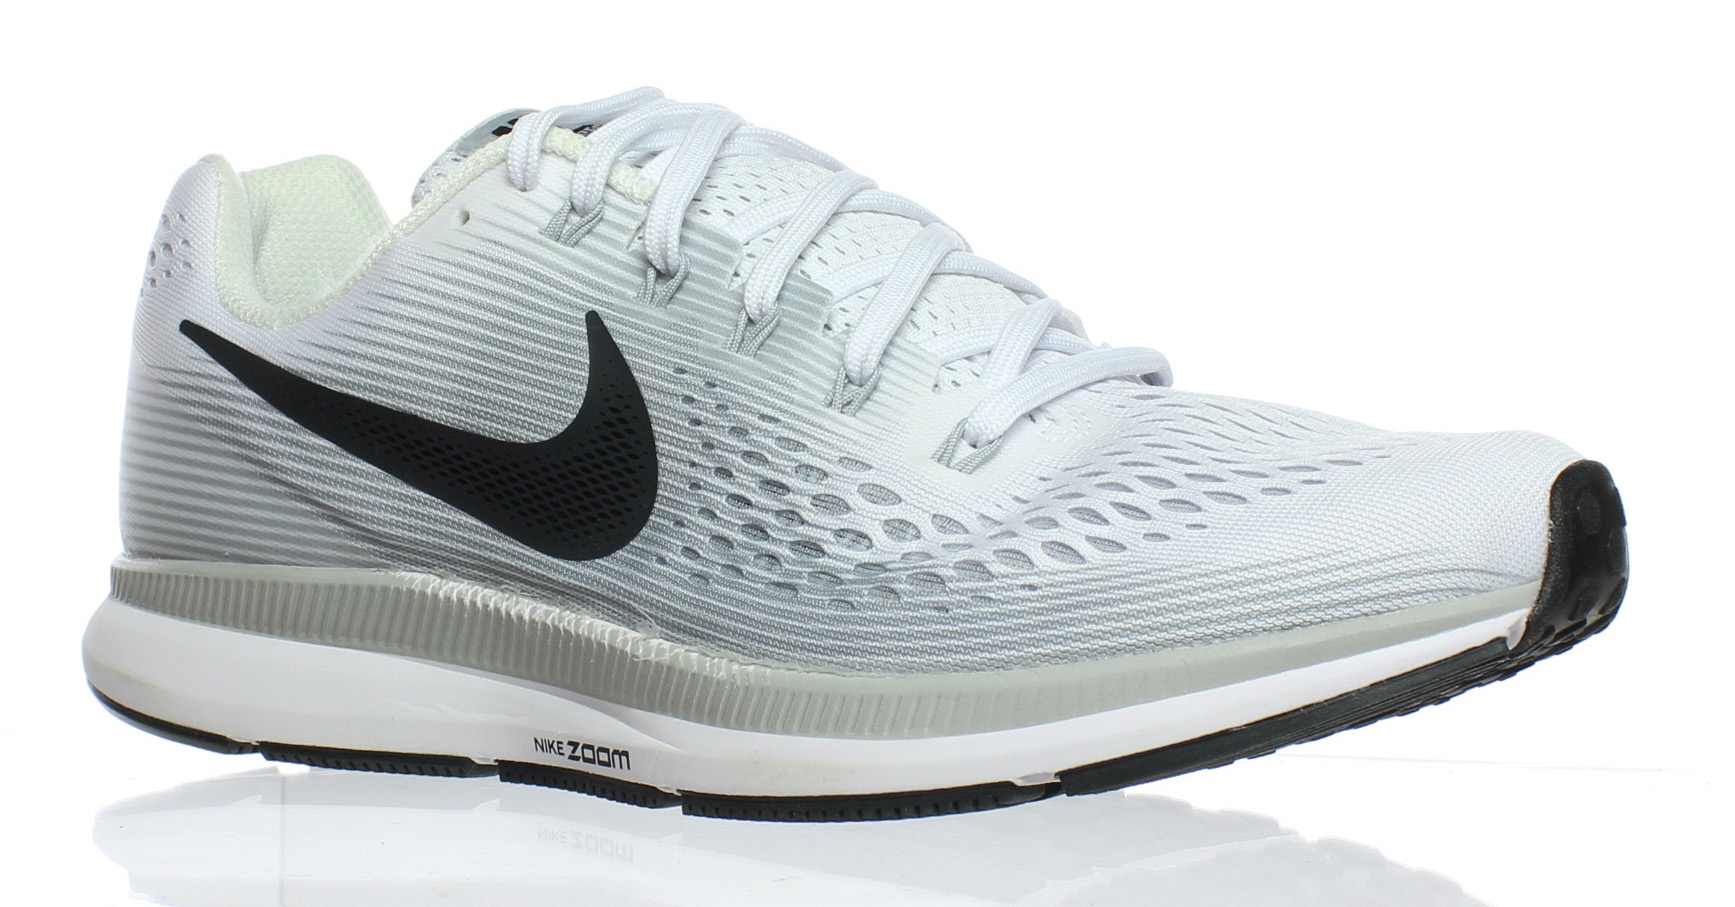 Nike Mens Shoes Running Shoes Mens Size 11.5 (21483) 612407